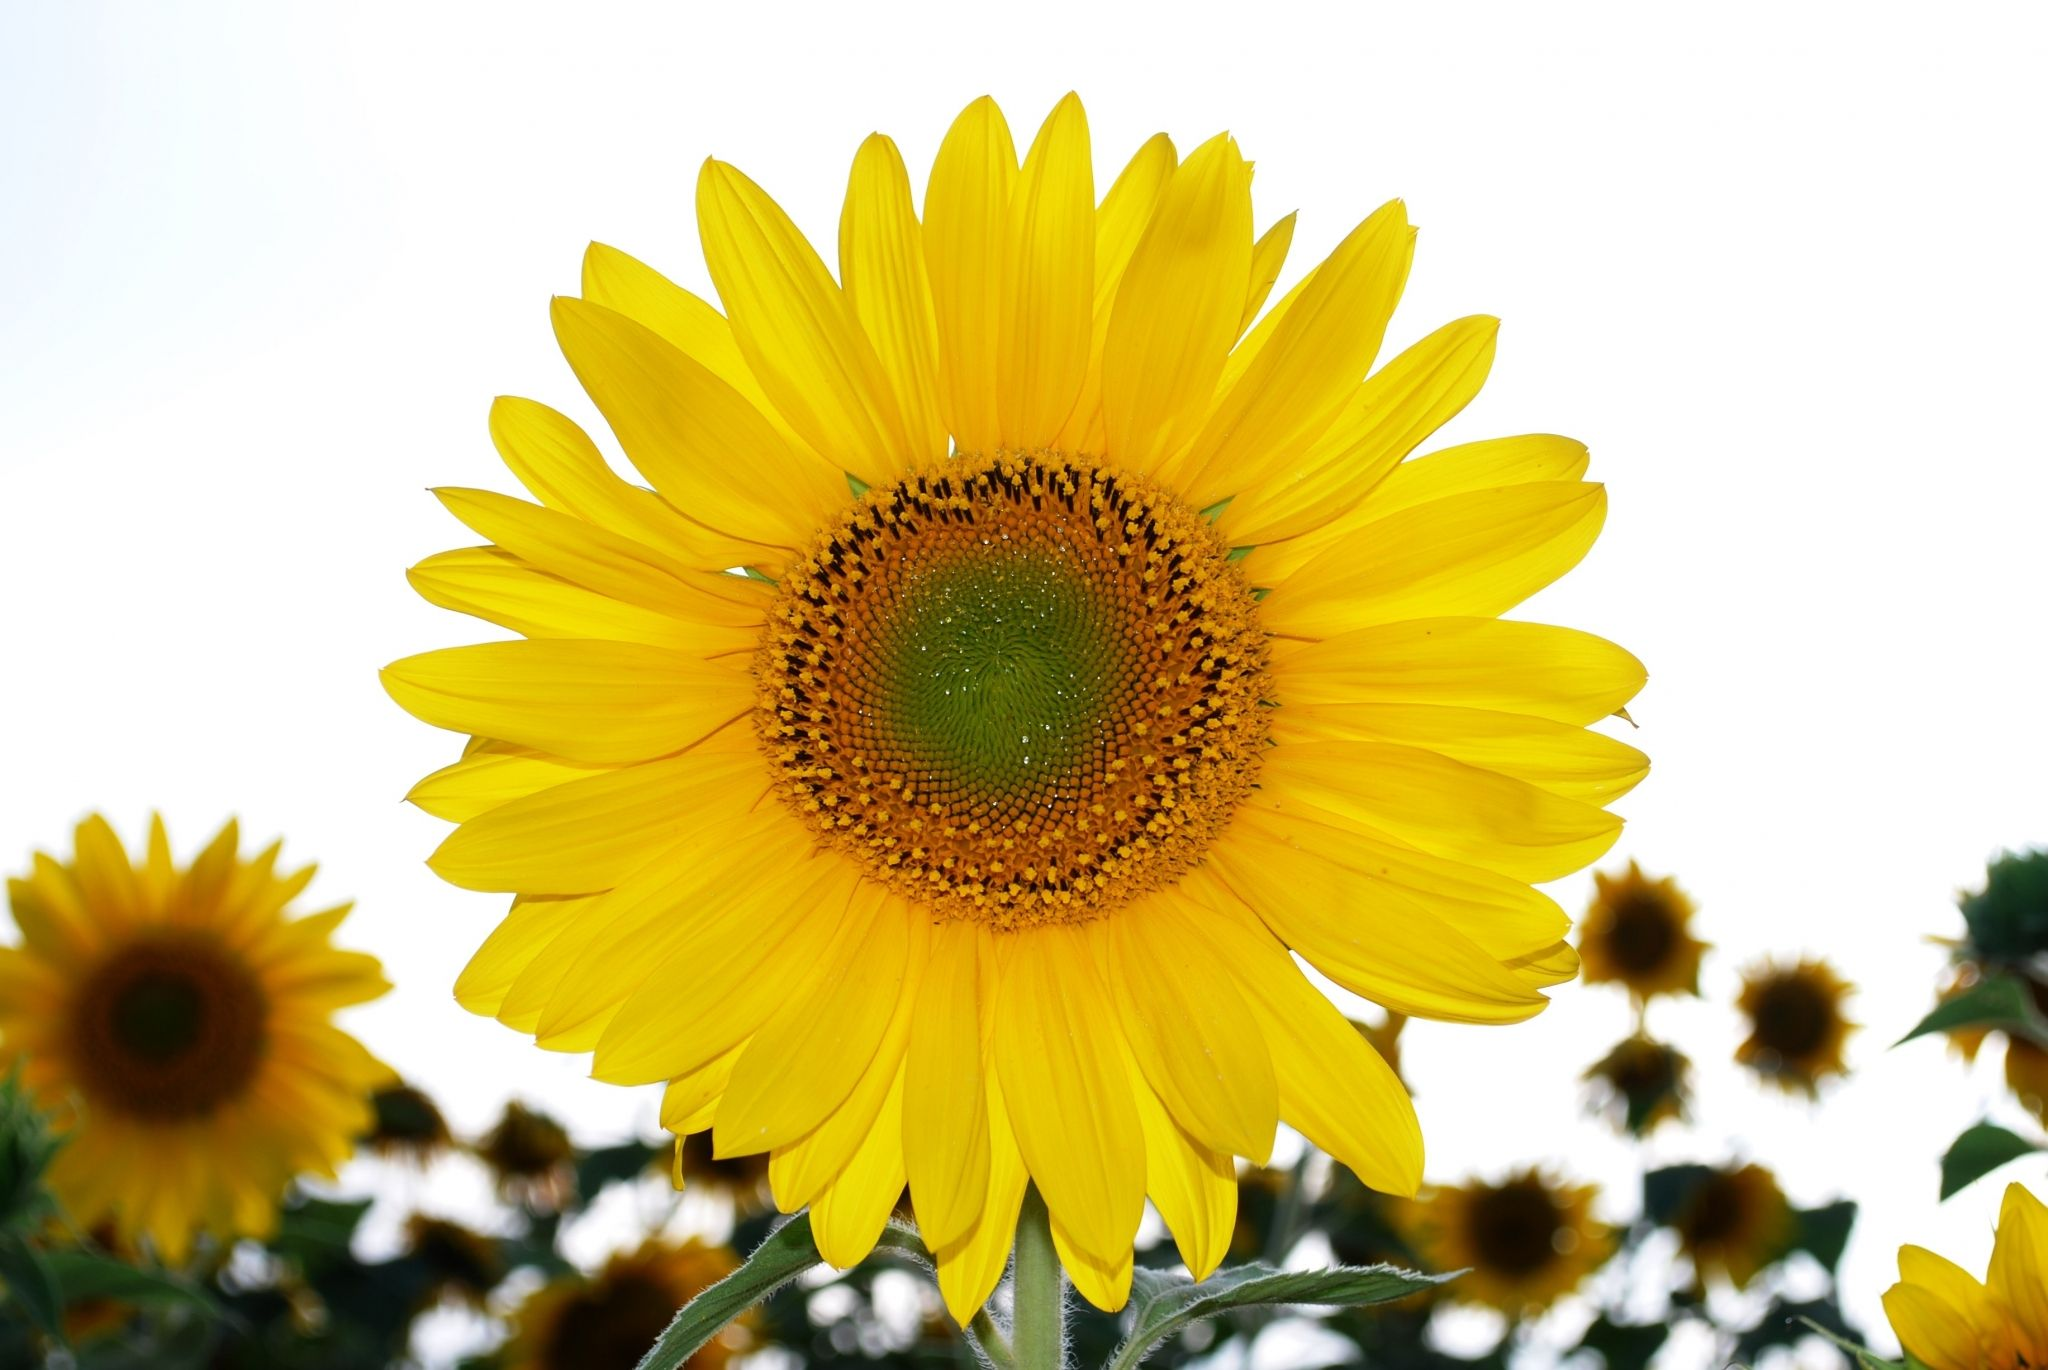 sunflower hd wallpapers 1080p windows Hd wallpapers